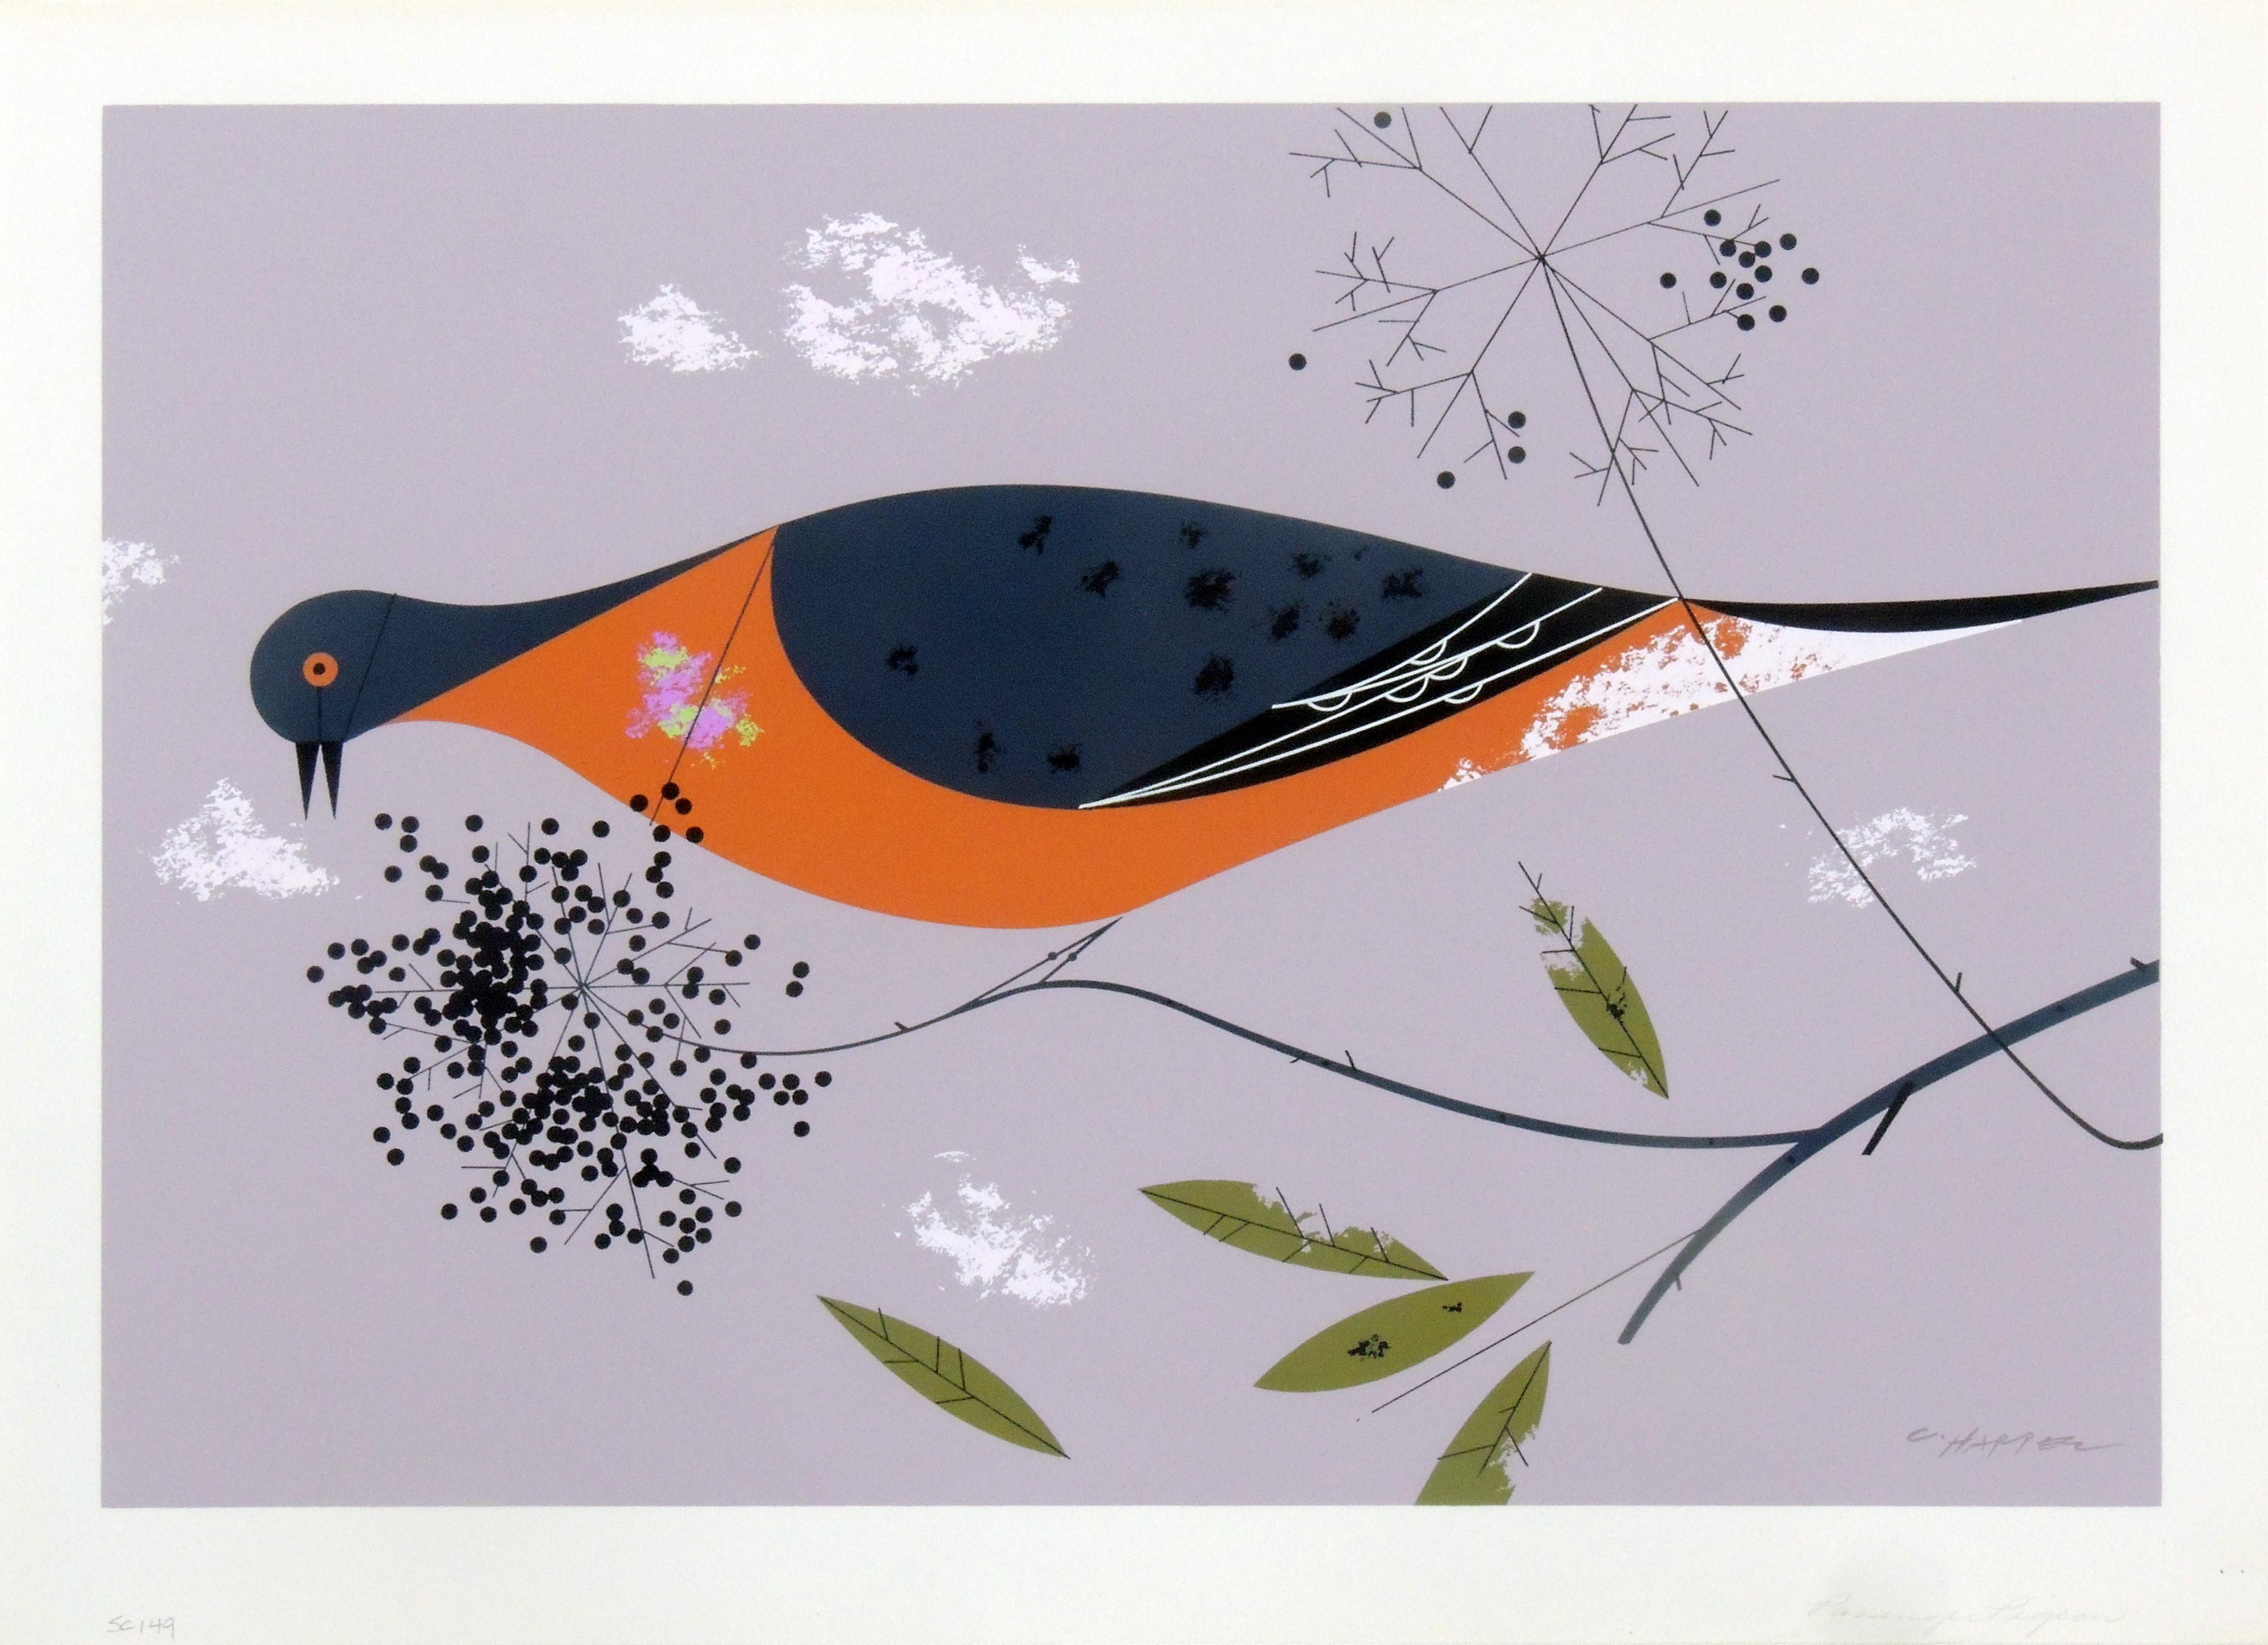 Charley Harper | PASSENGER PIGEON | serigraph on paper | 18 x 13"